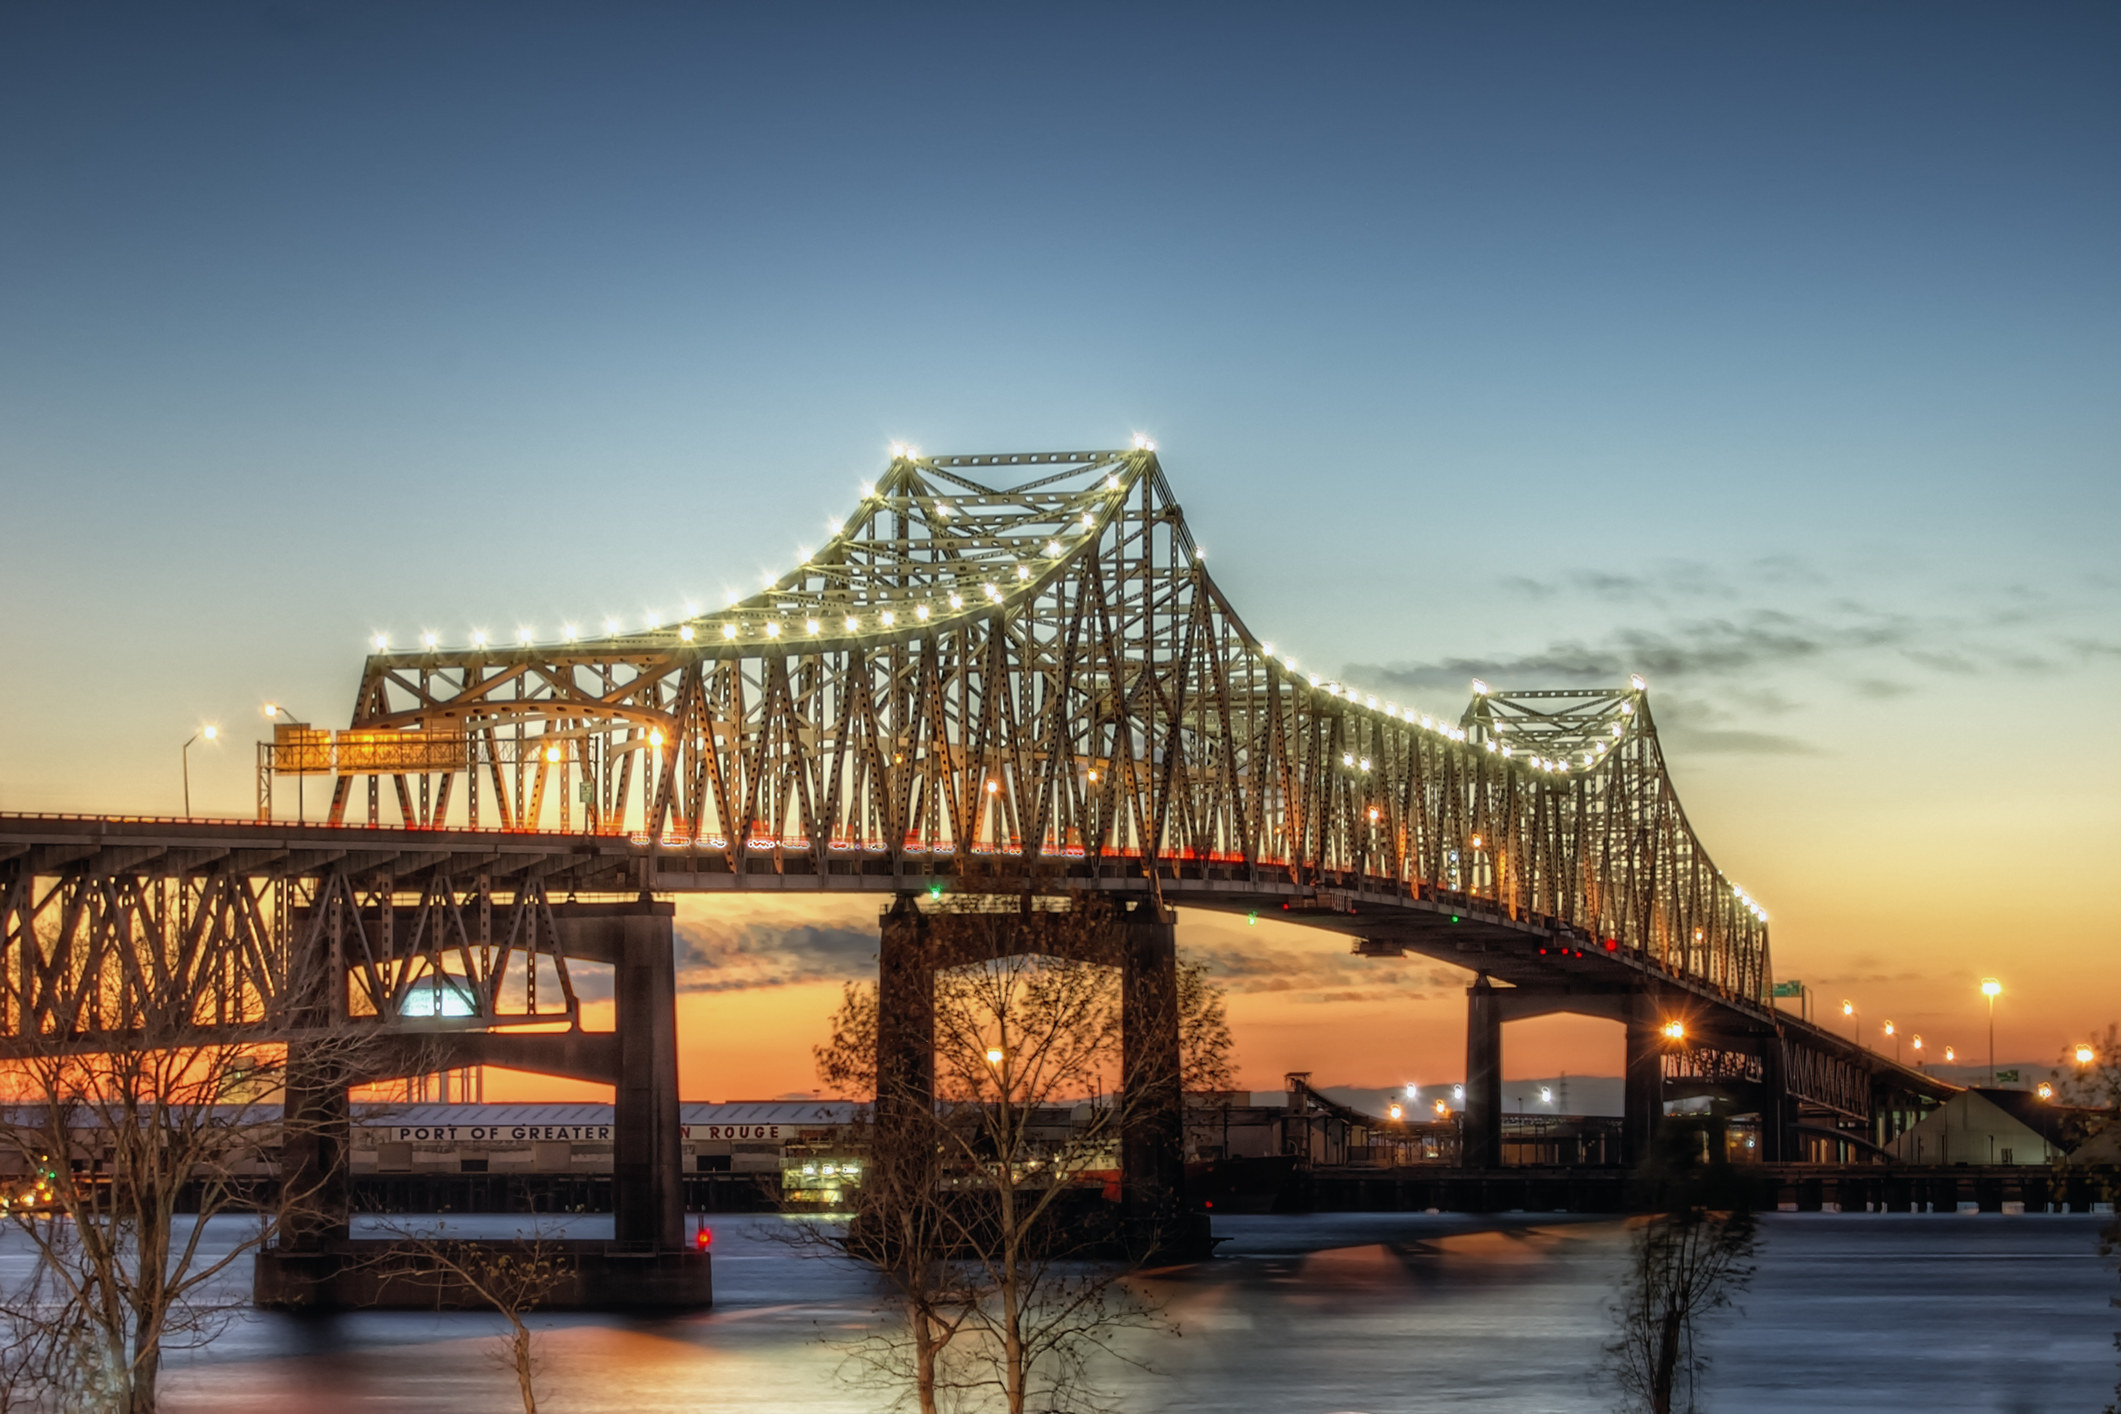 Mississippi River Bridge in Baton Rouge lit up during sunset